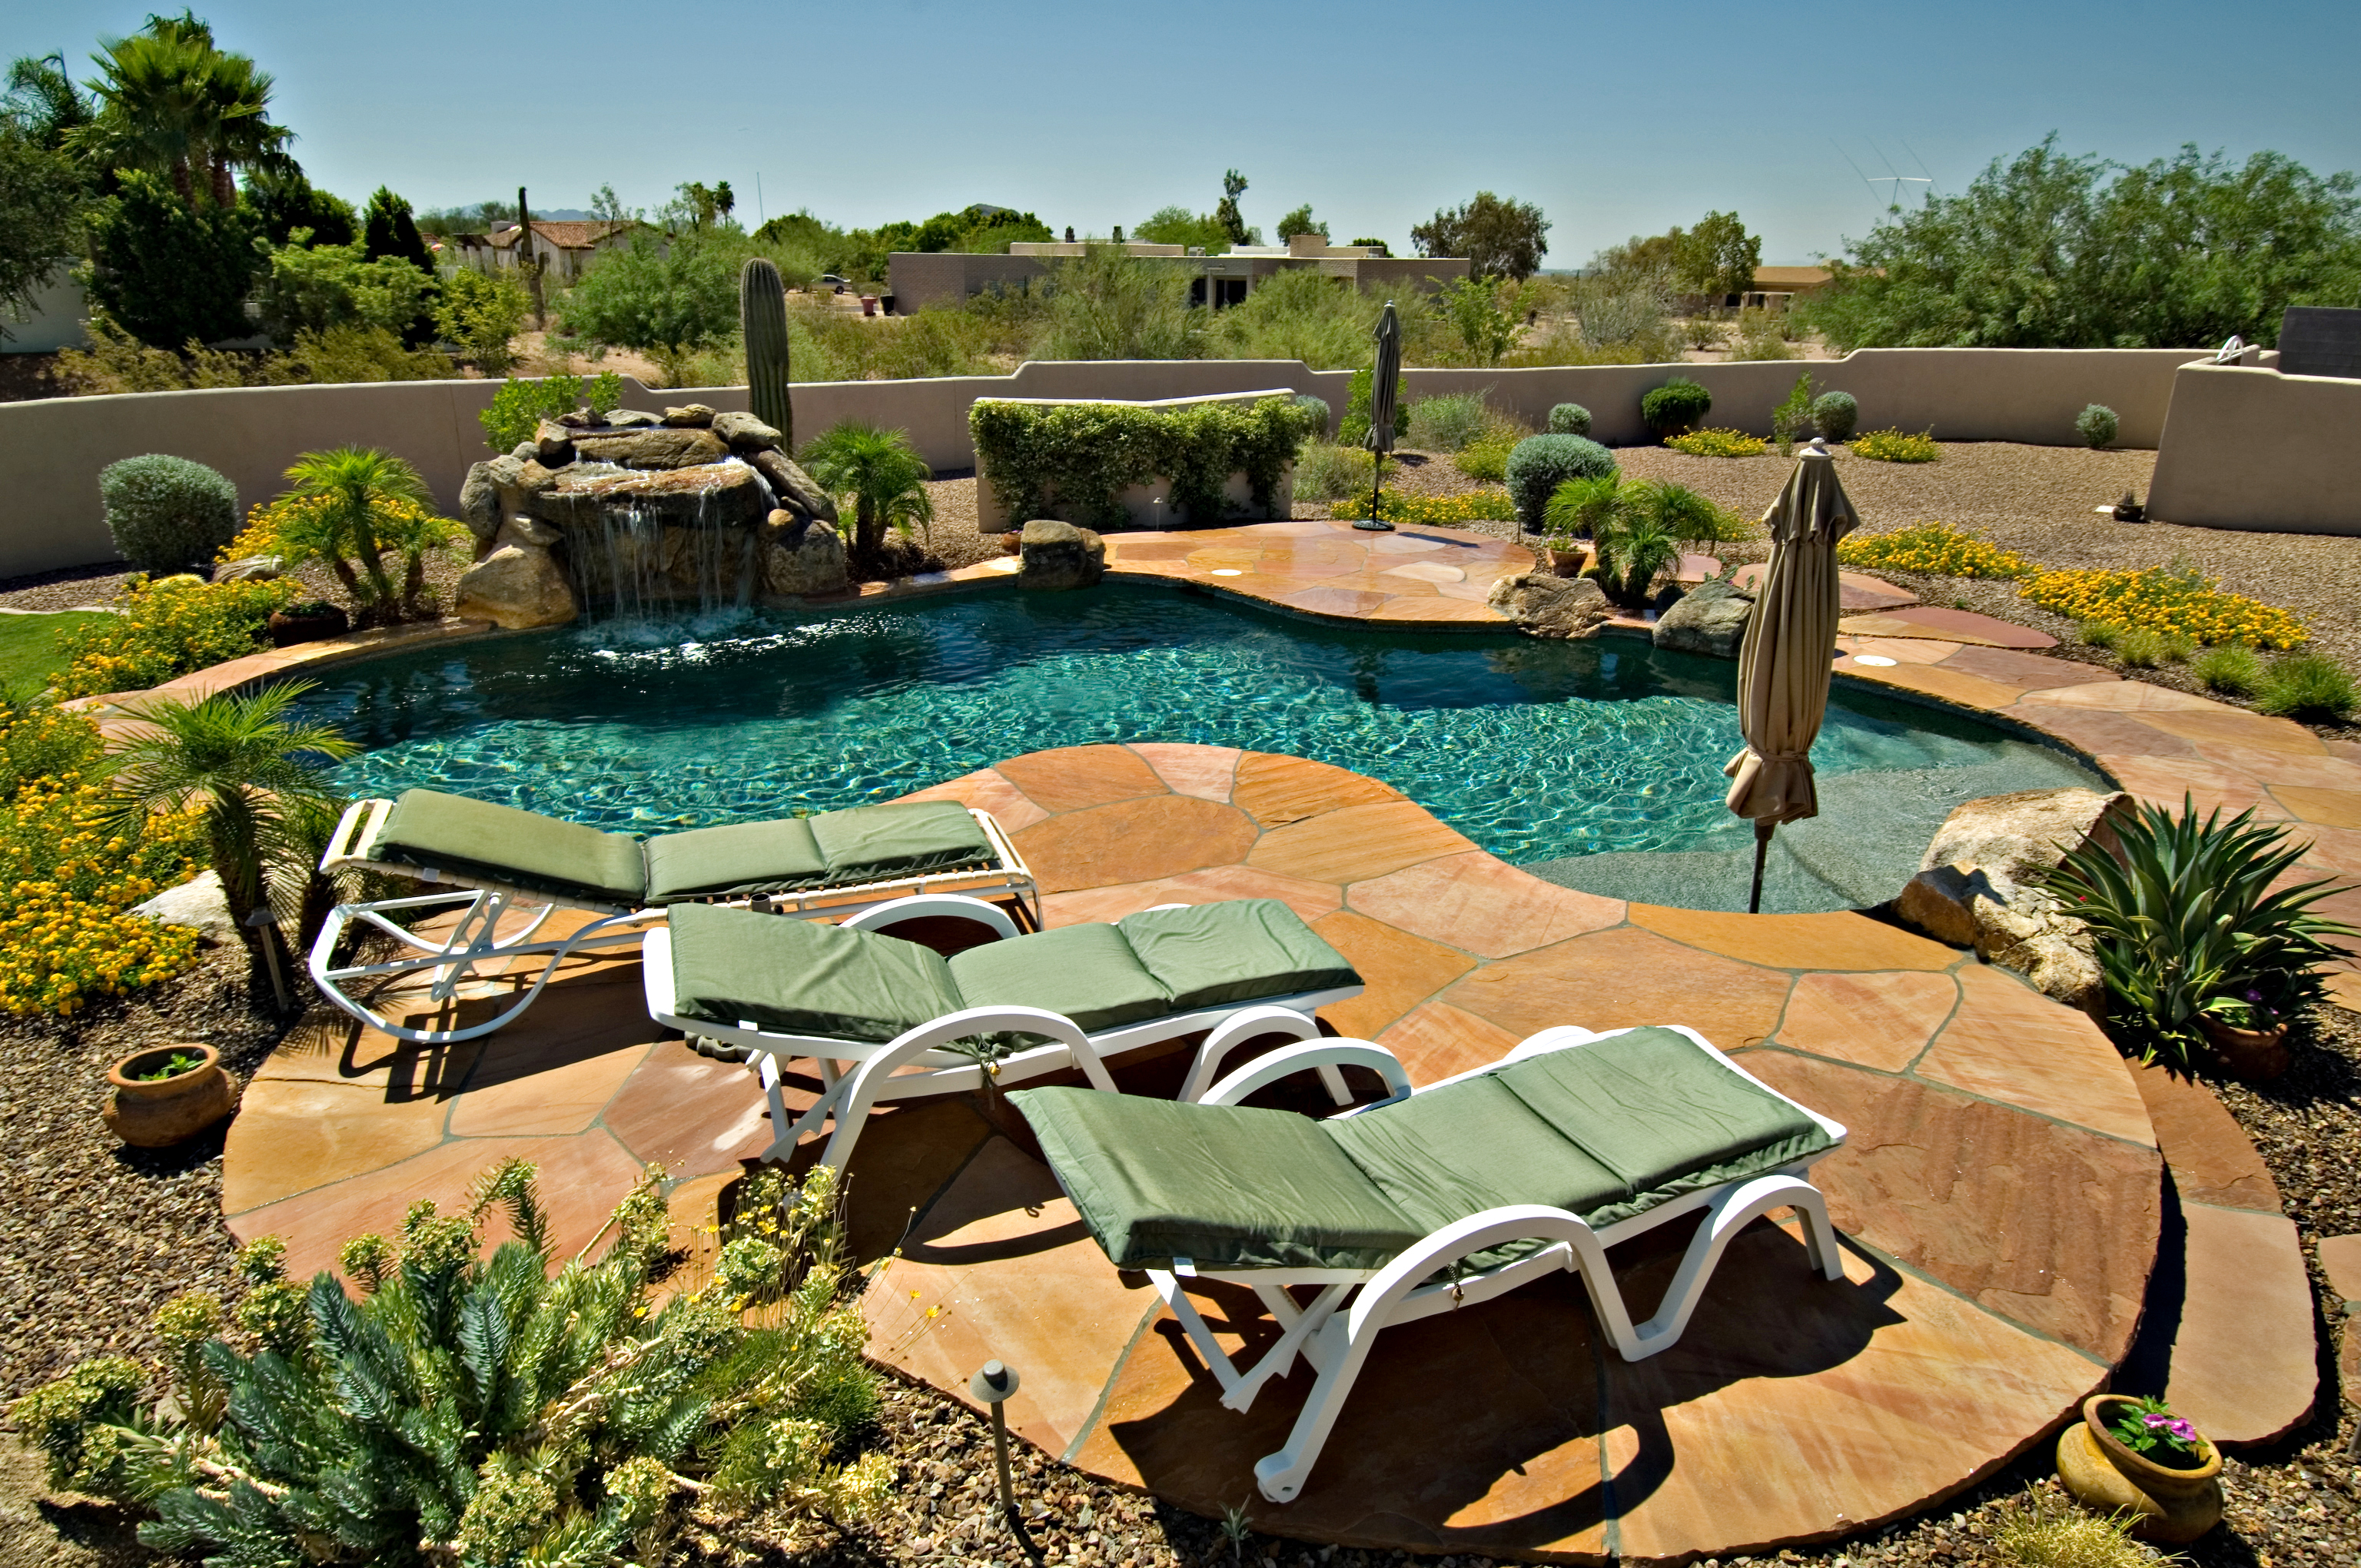 Backyard Pool Landscaping Ideas | HomesFeed on Backyard Inground Pool Landscaping Ideas id=22347